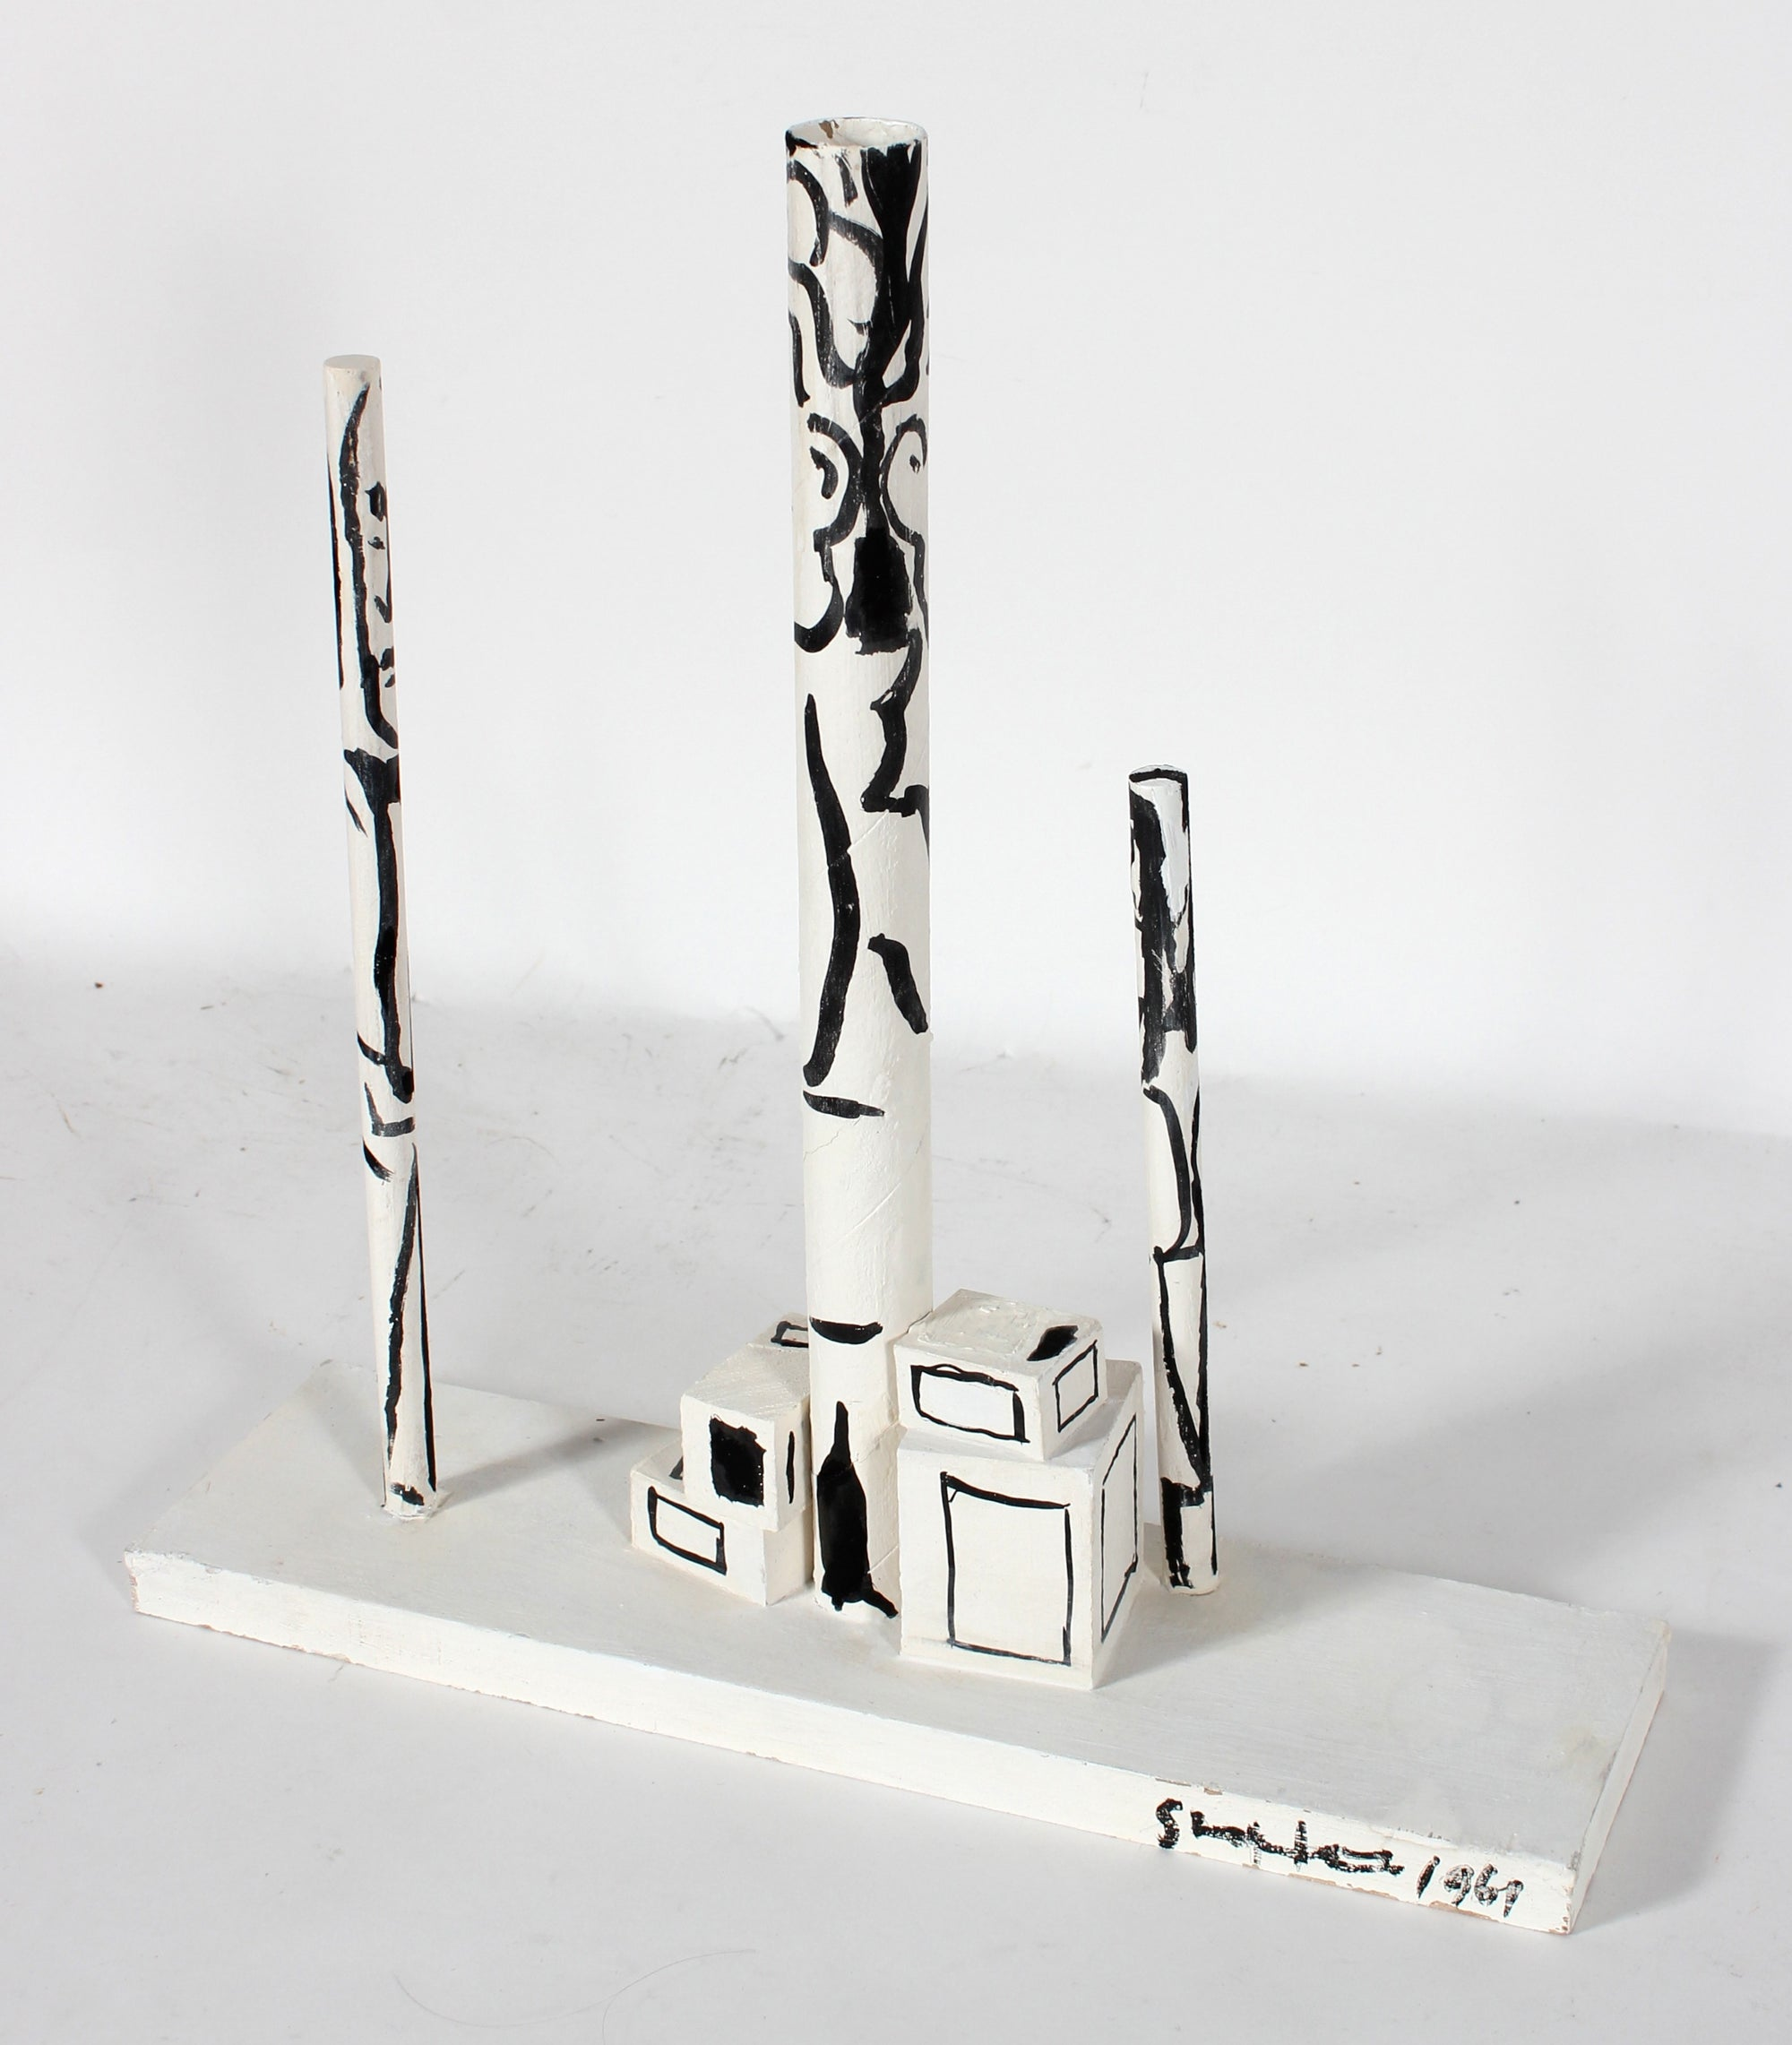 Modernist Monochrome Sculpture<br>1969 Gouache on Wood<br><br>#50838